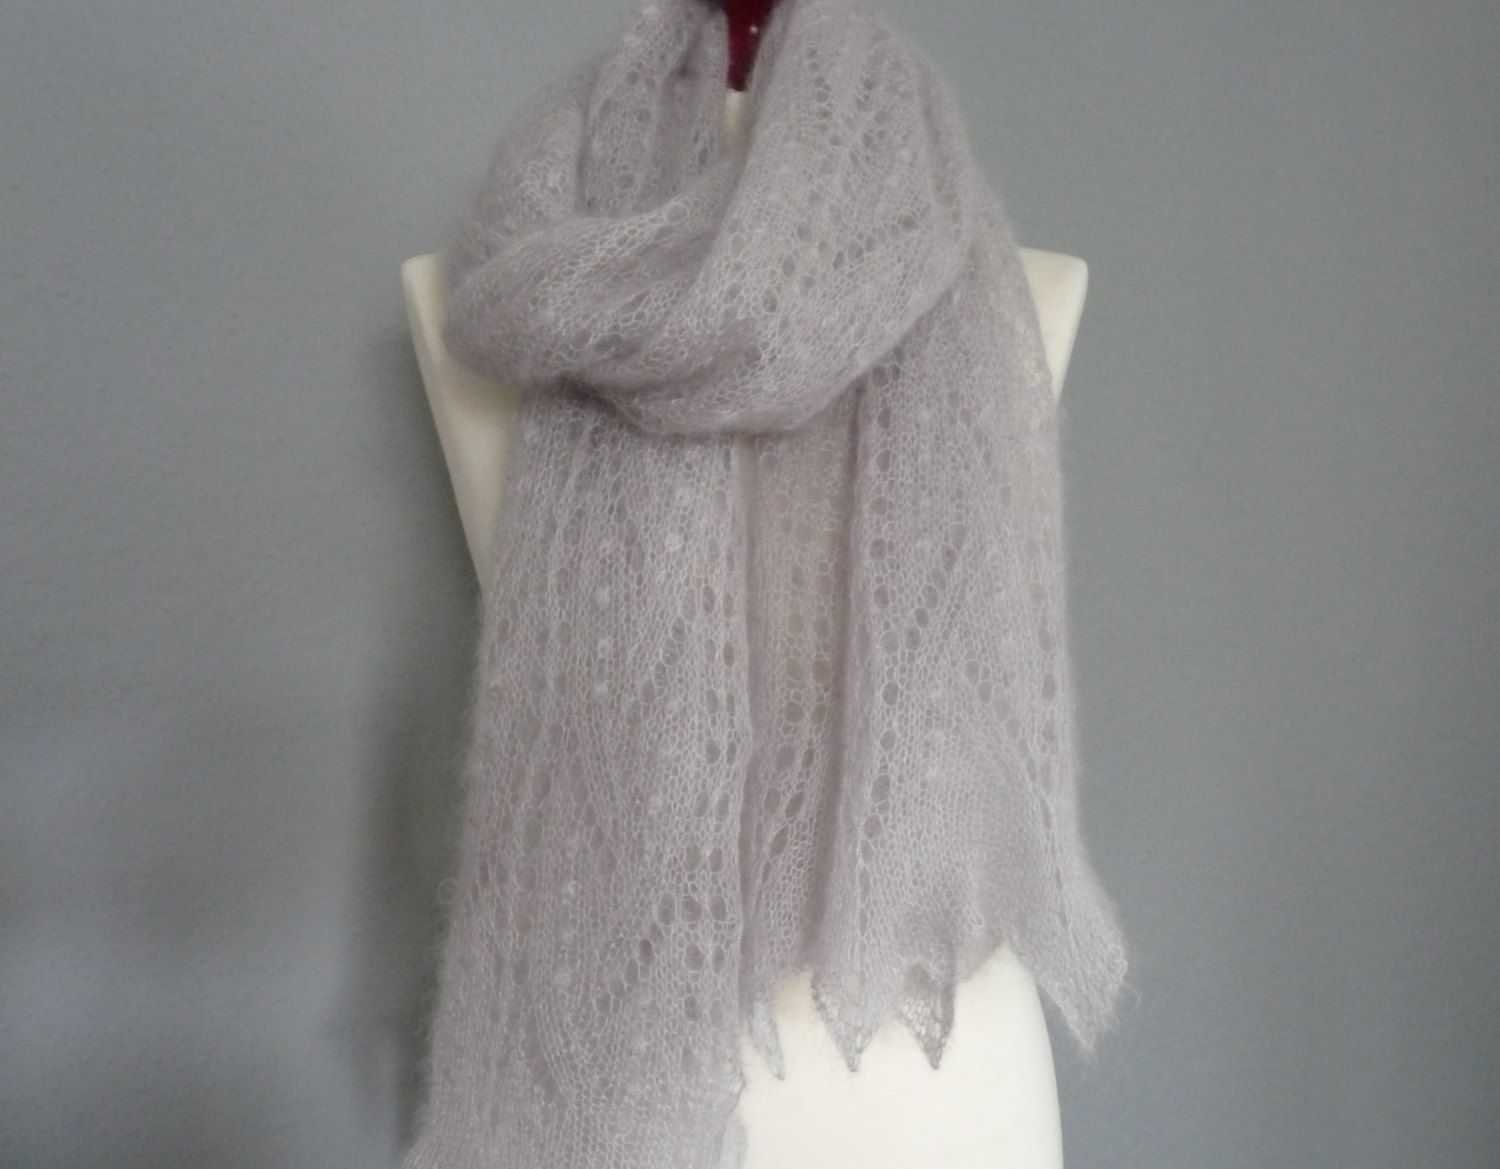 Lace hand knitted scarf light gray silkmohair lace scarf lace hand knitted scarf light gray silkmohair lace scarf estonian lace pattern bankloansurffo Image collections